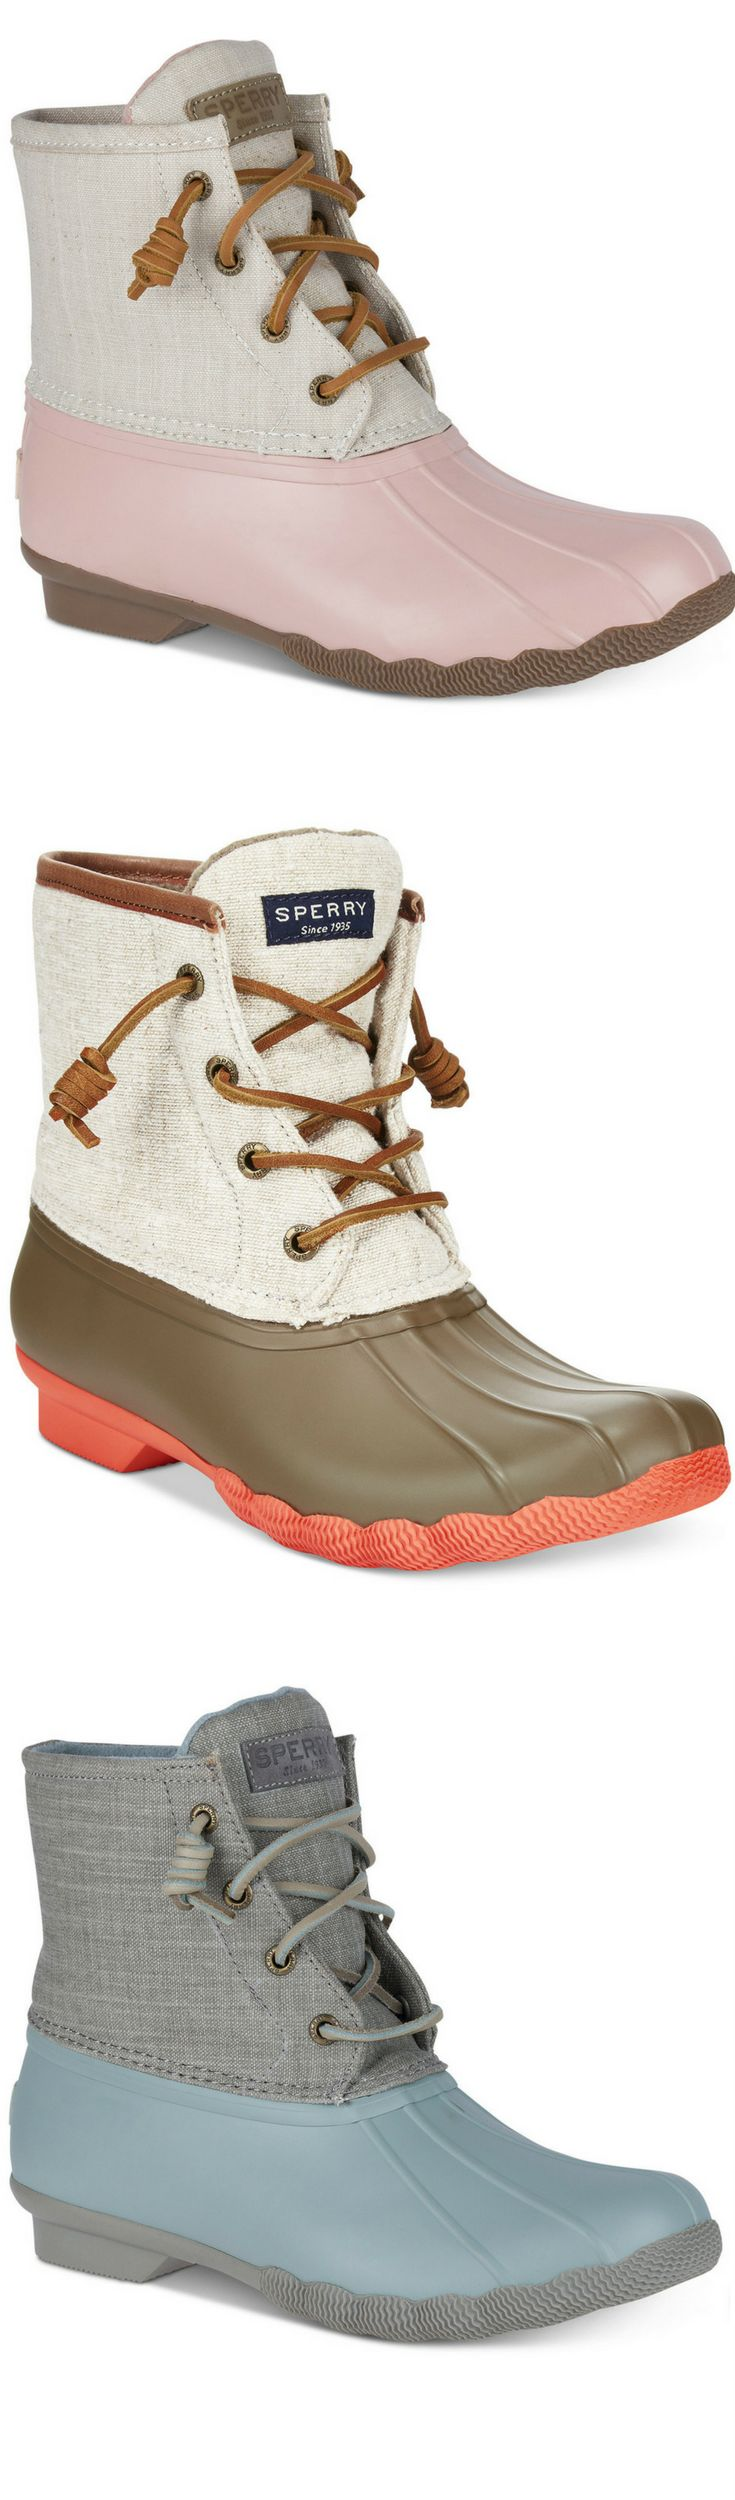 Sperry Women's Saltwater Duck Booties #boots #affiliate